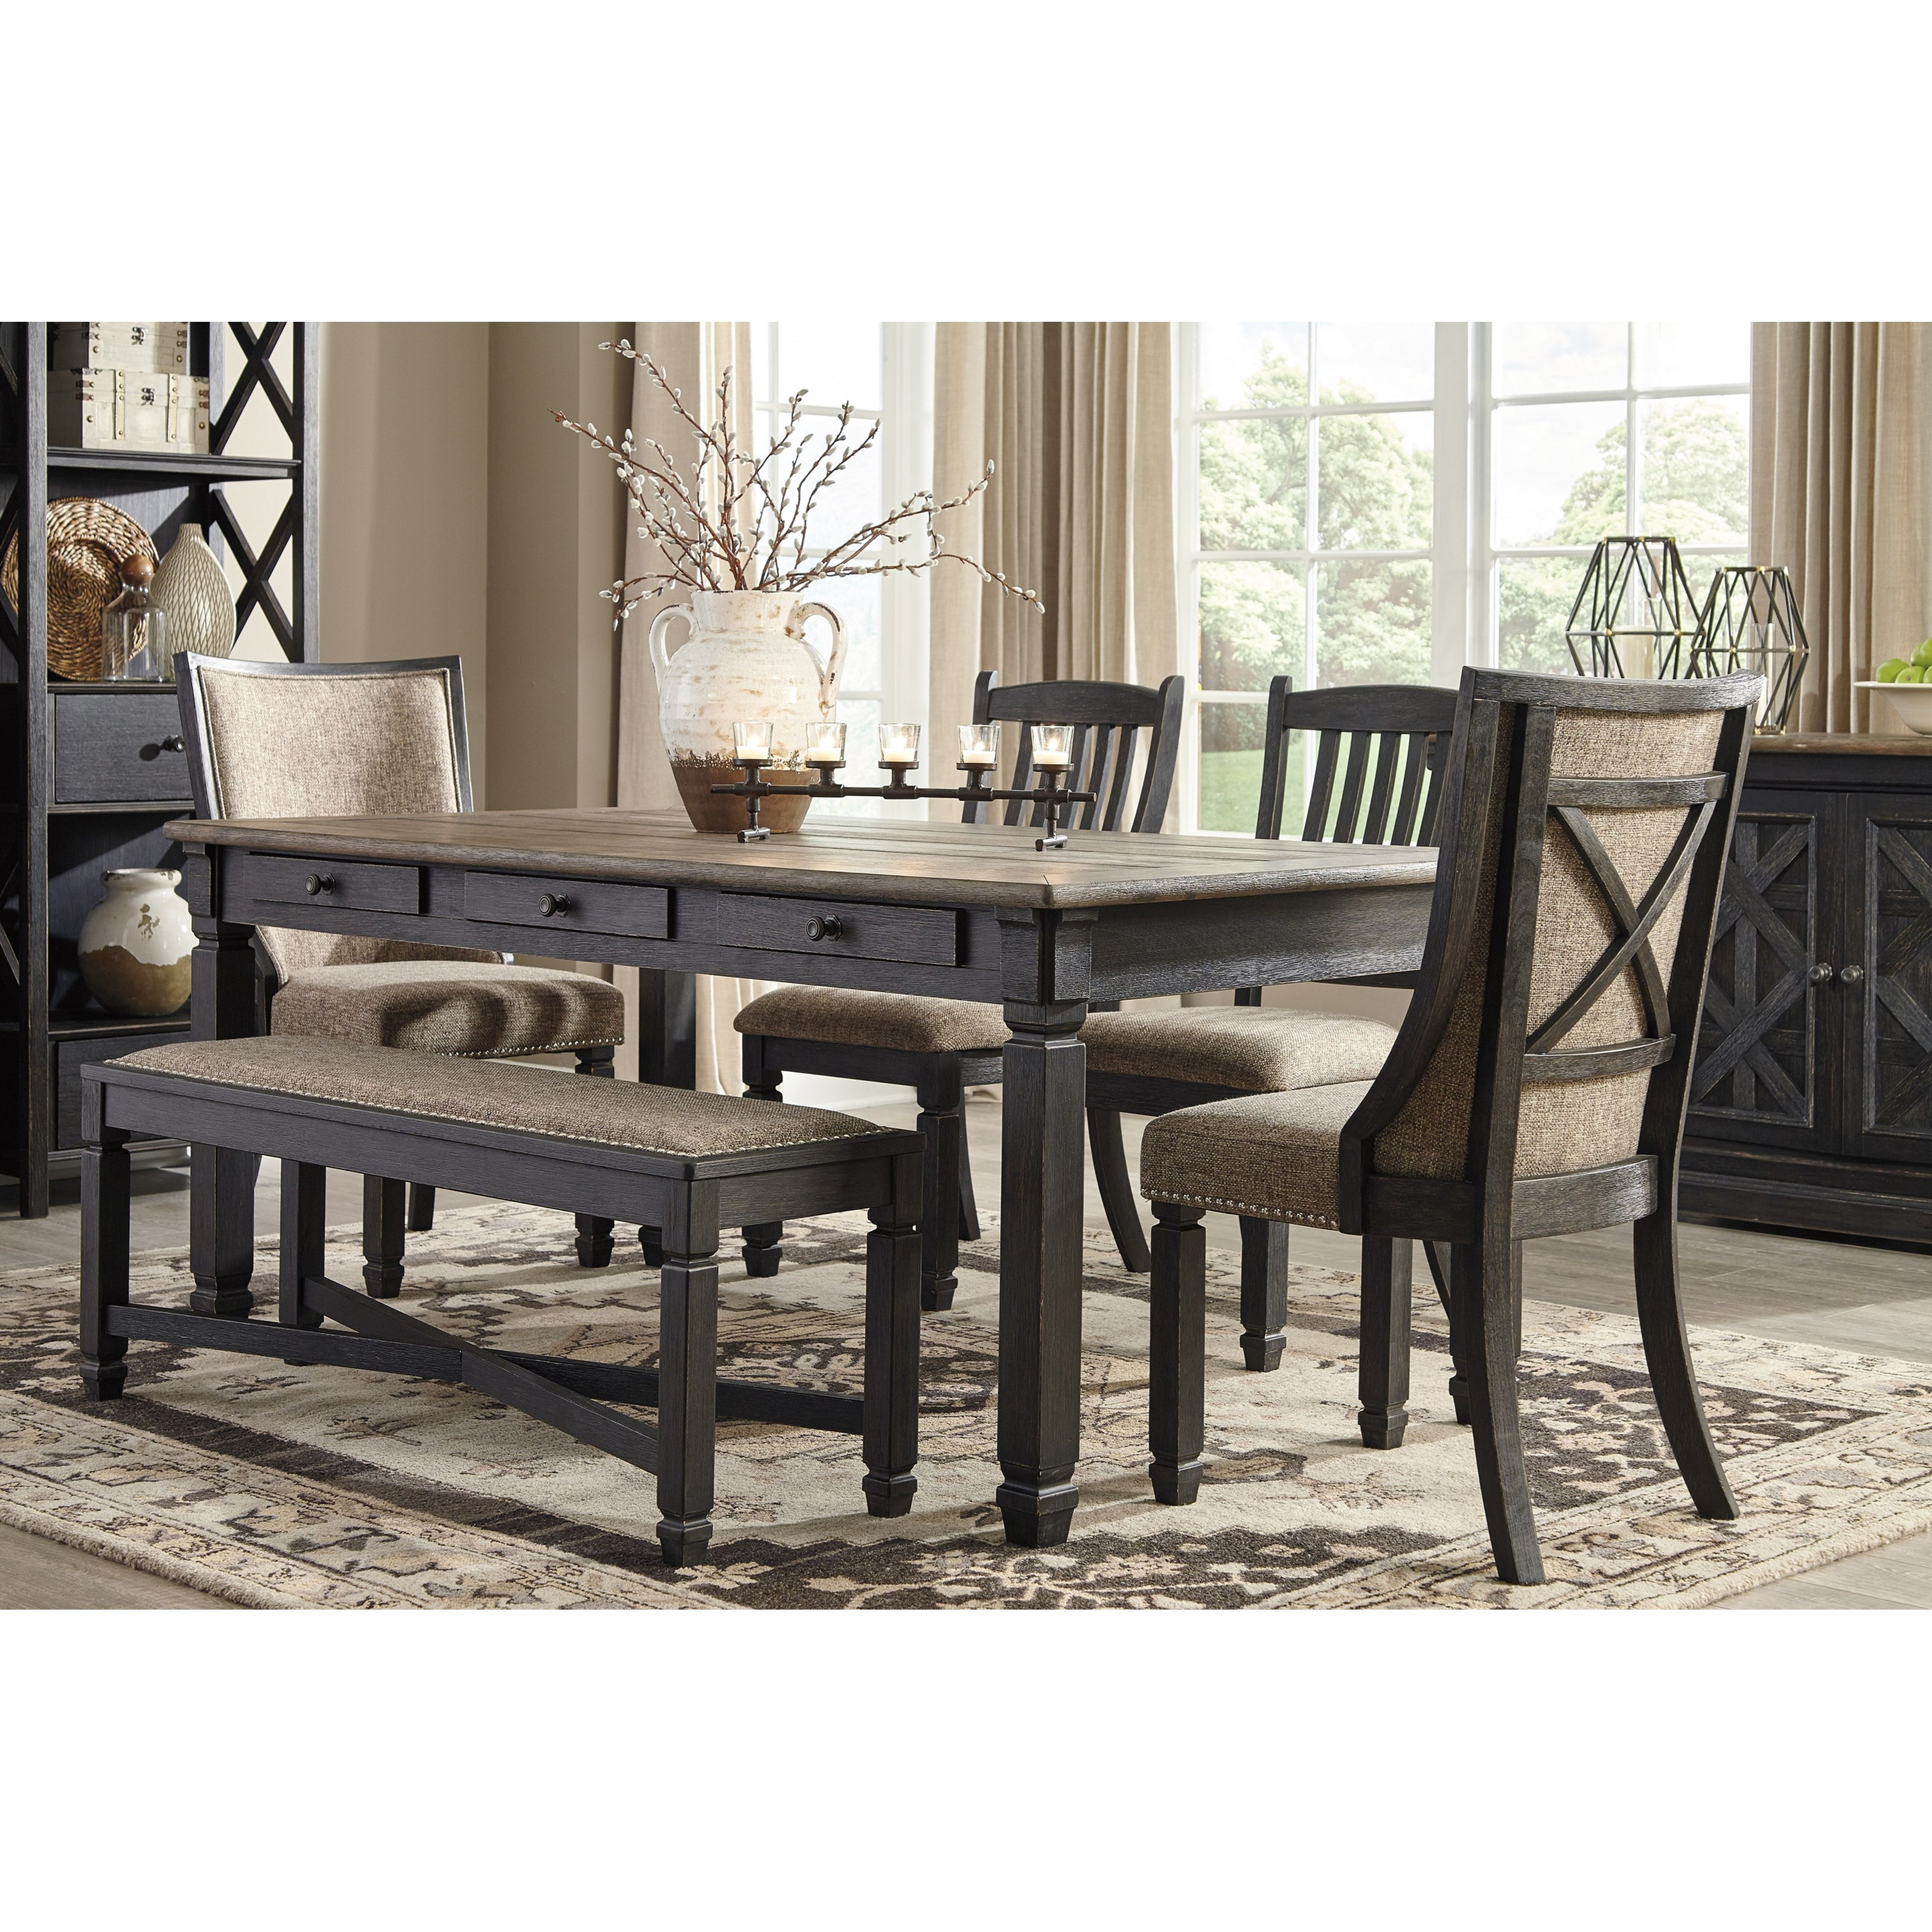 Tyler Creek Relaxed Vintage Rectangular Dining Room Table